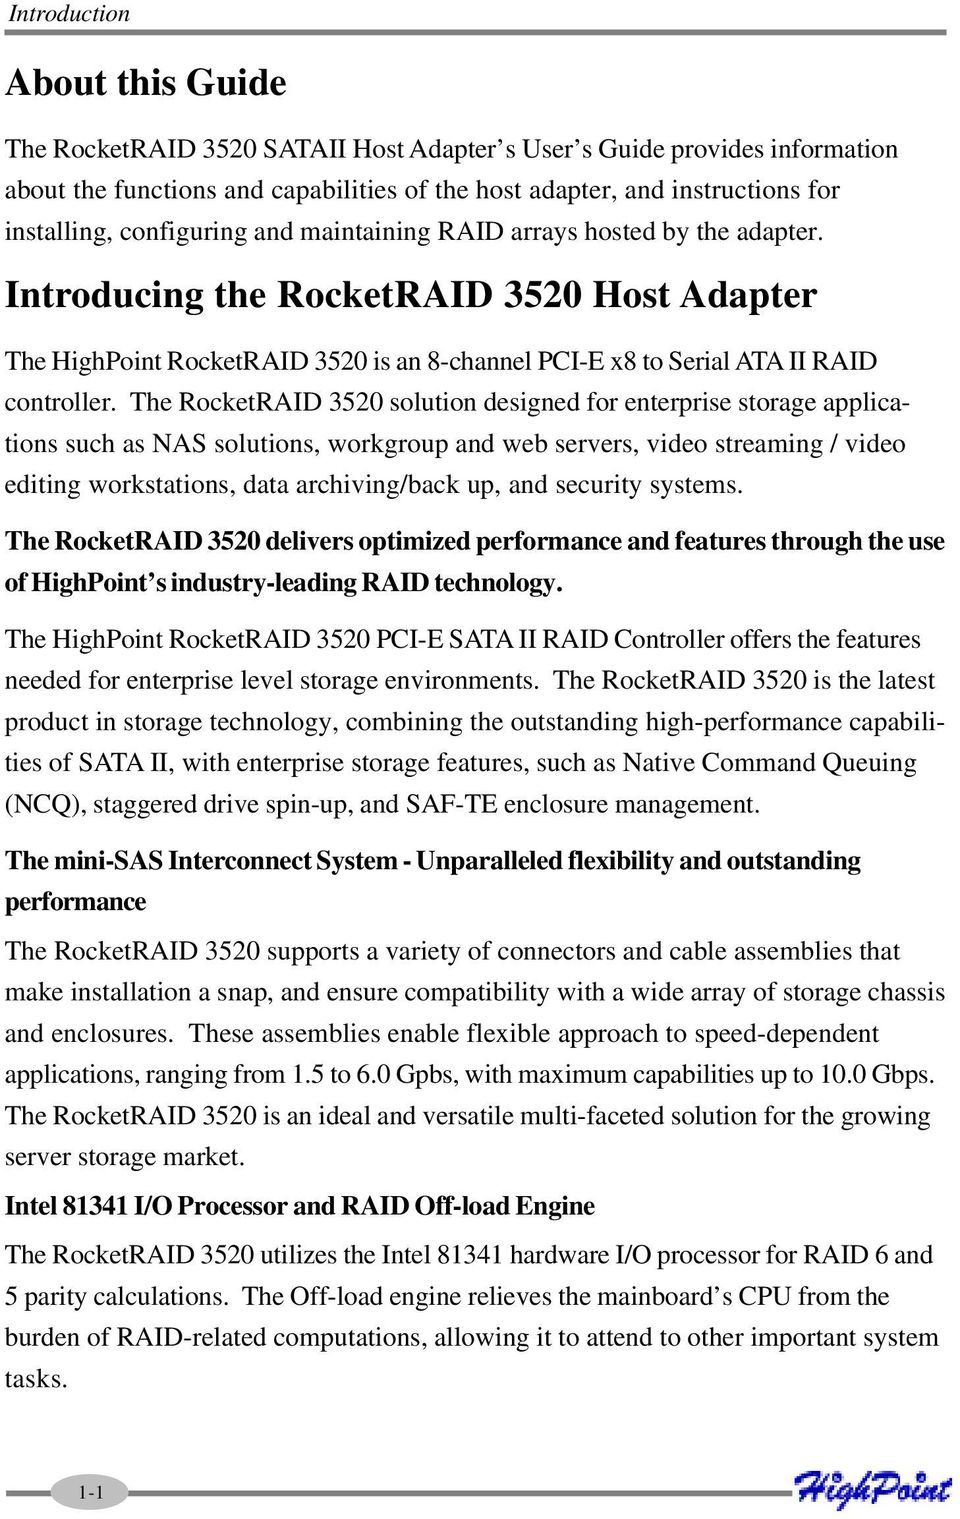 The RocketRAID 3520 solution designed for enterprise storage applications such as NAS solutions, workgroup and web servers, video streaming / video editing workstations, data archiving/back up, and